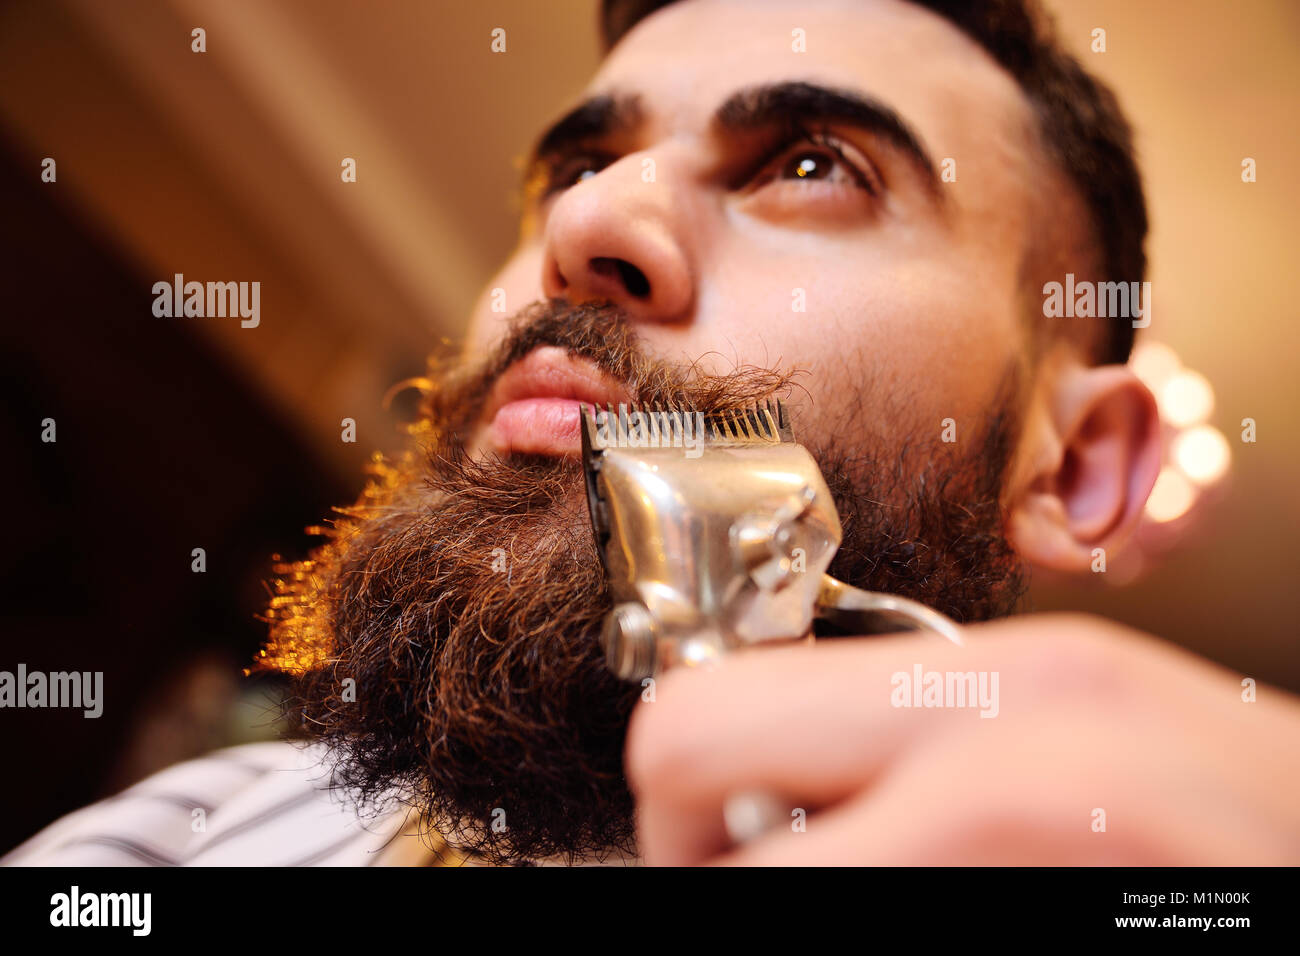 Shaving your beard in barbershop - Stock Image